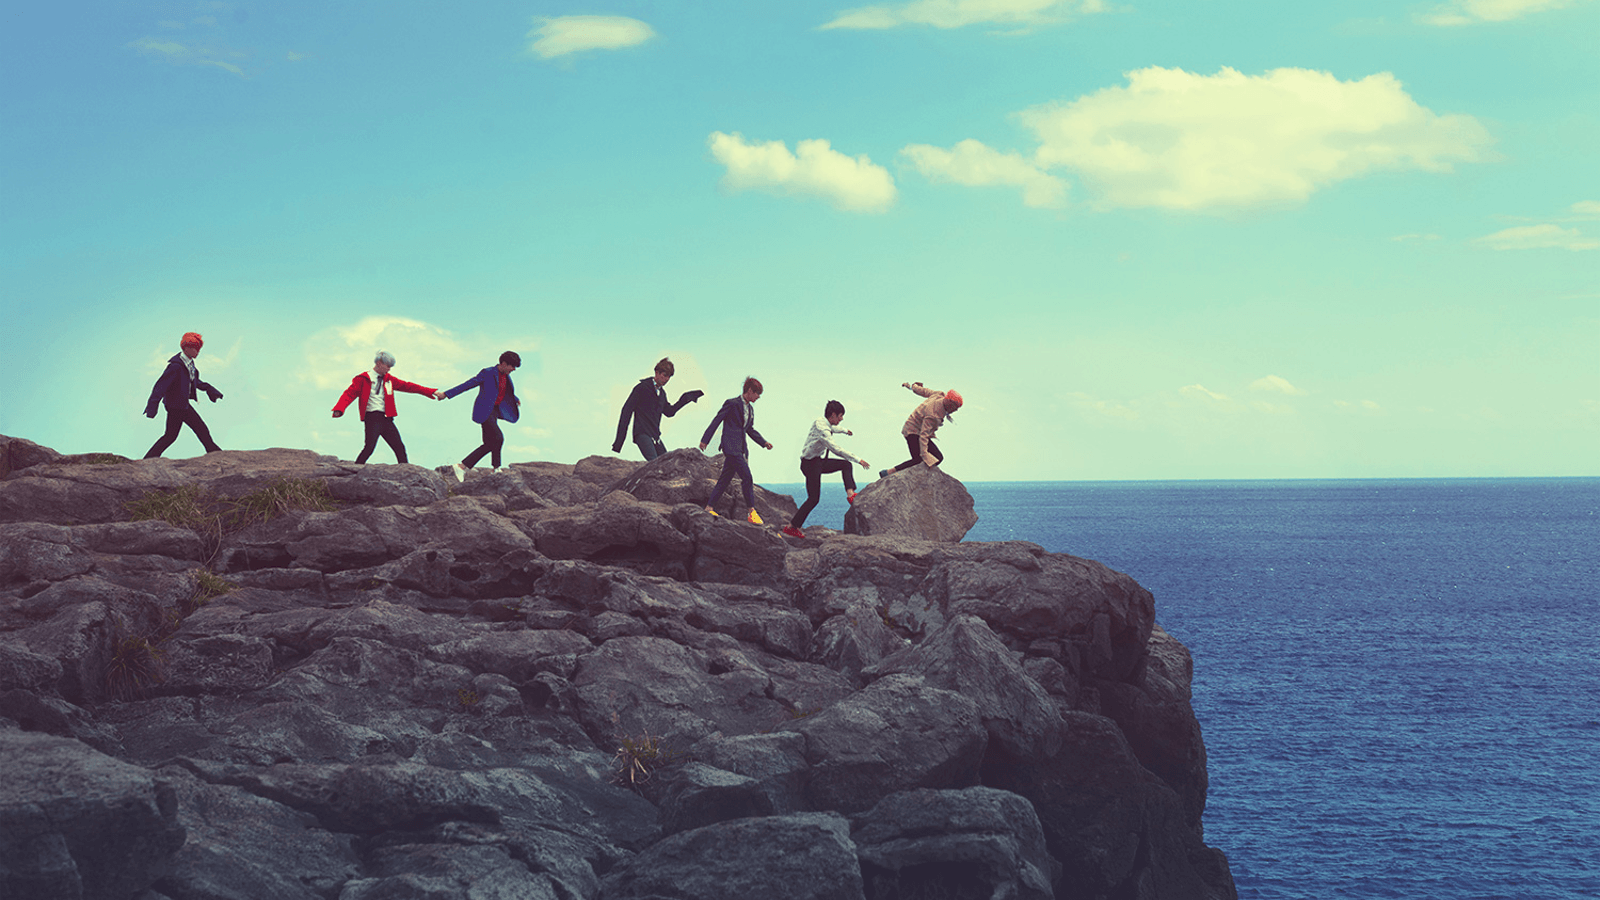 Bts Computer Wallpapers Top Free Bts Computer Backgrounds Wallpaperaccess Bts Backgrounds Bts Concept Photo Bts Hyyh